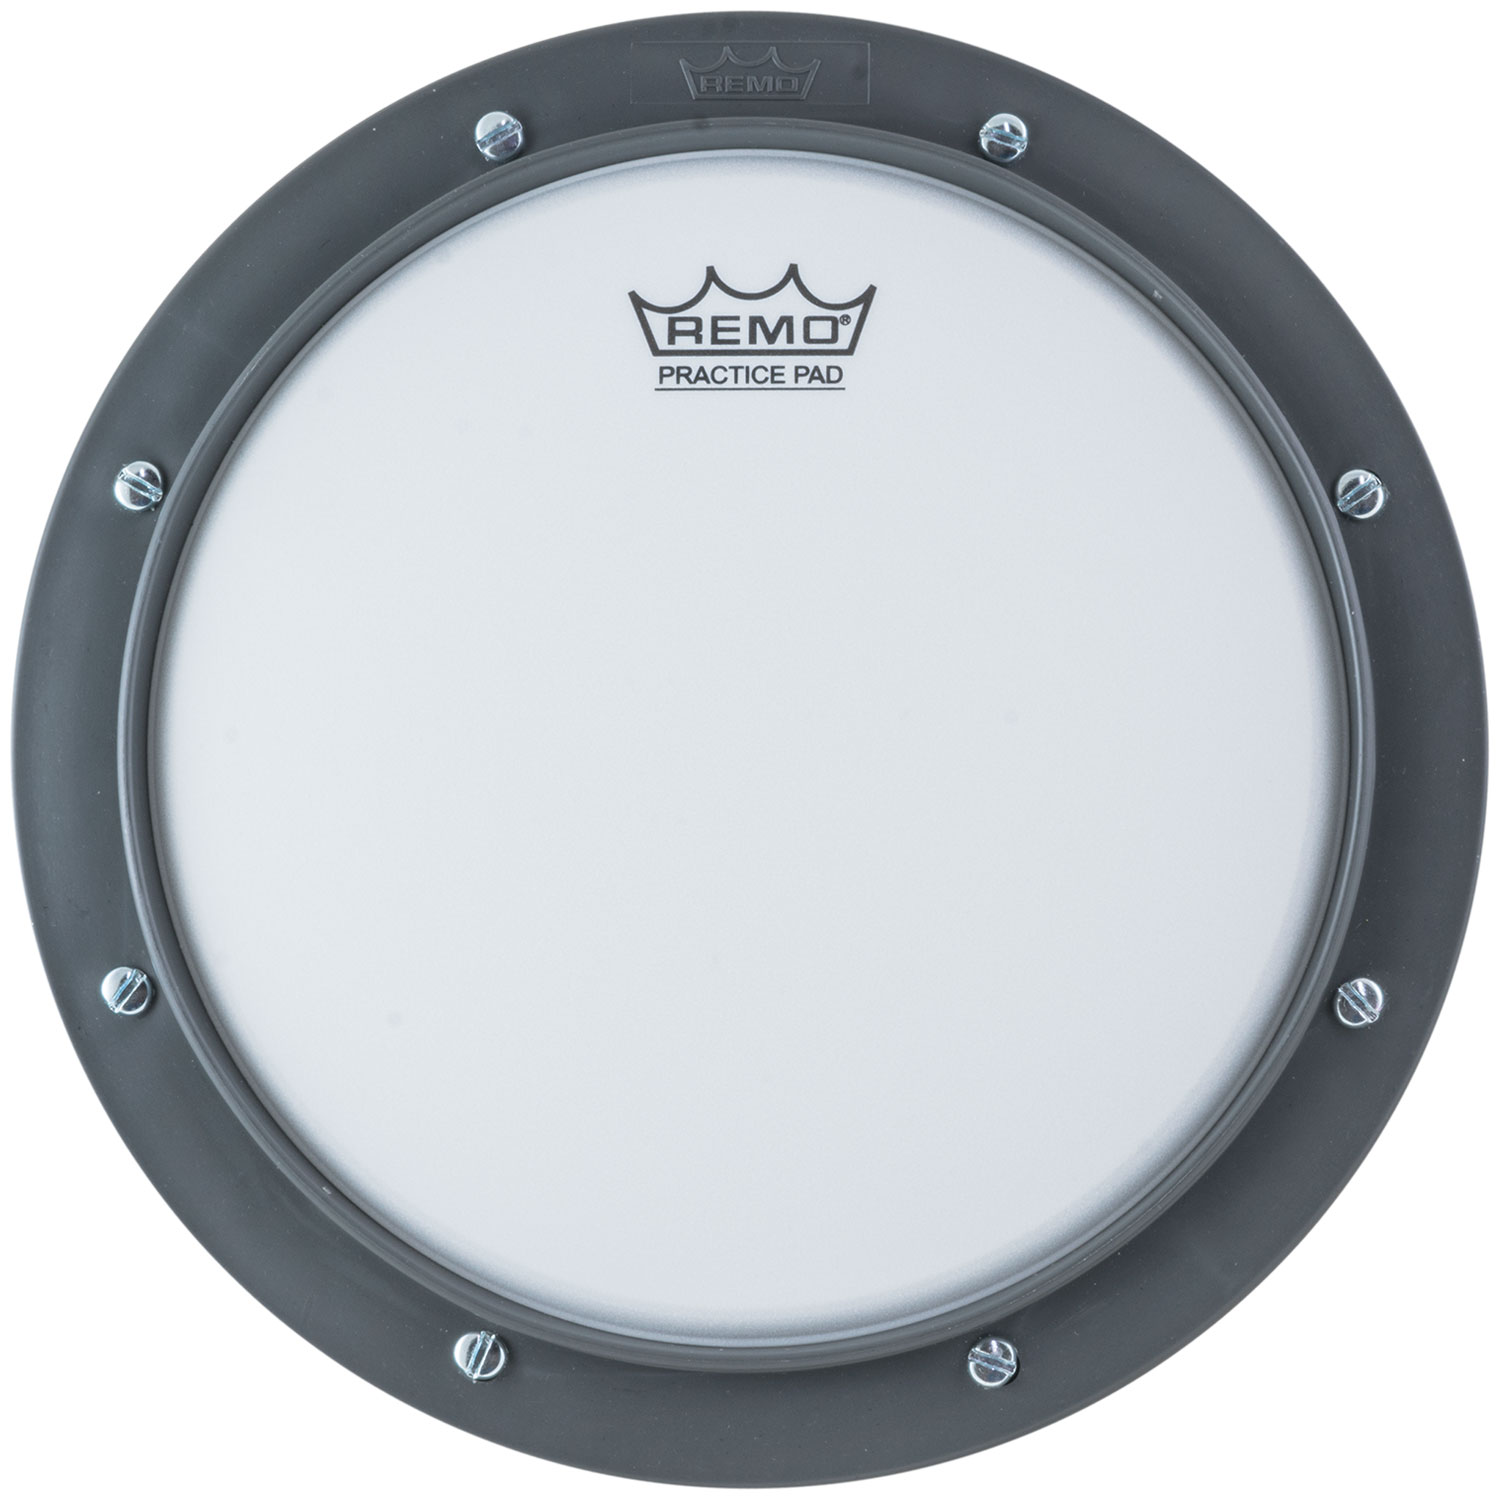 remo 10 tunable practice pad rt 0010 00. Black Bedroom Furniture Sets. Home Design Ideas